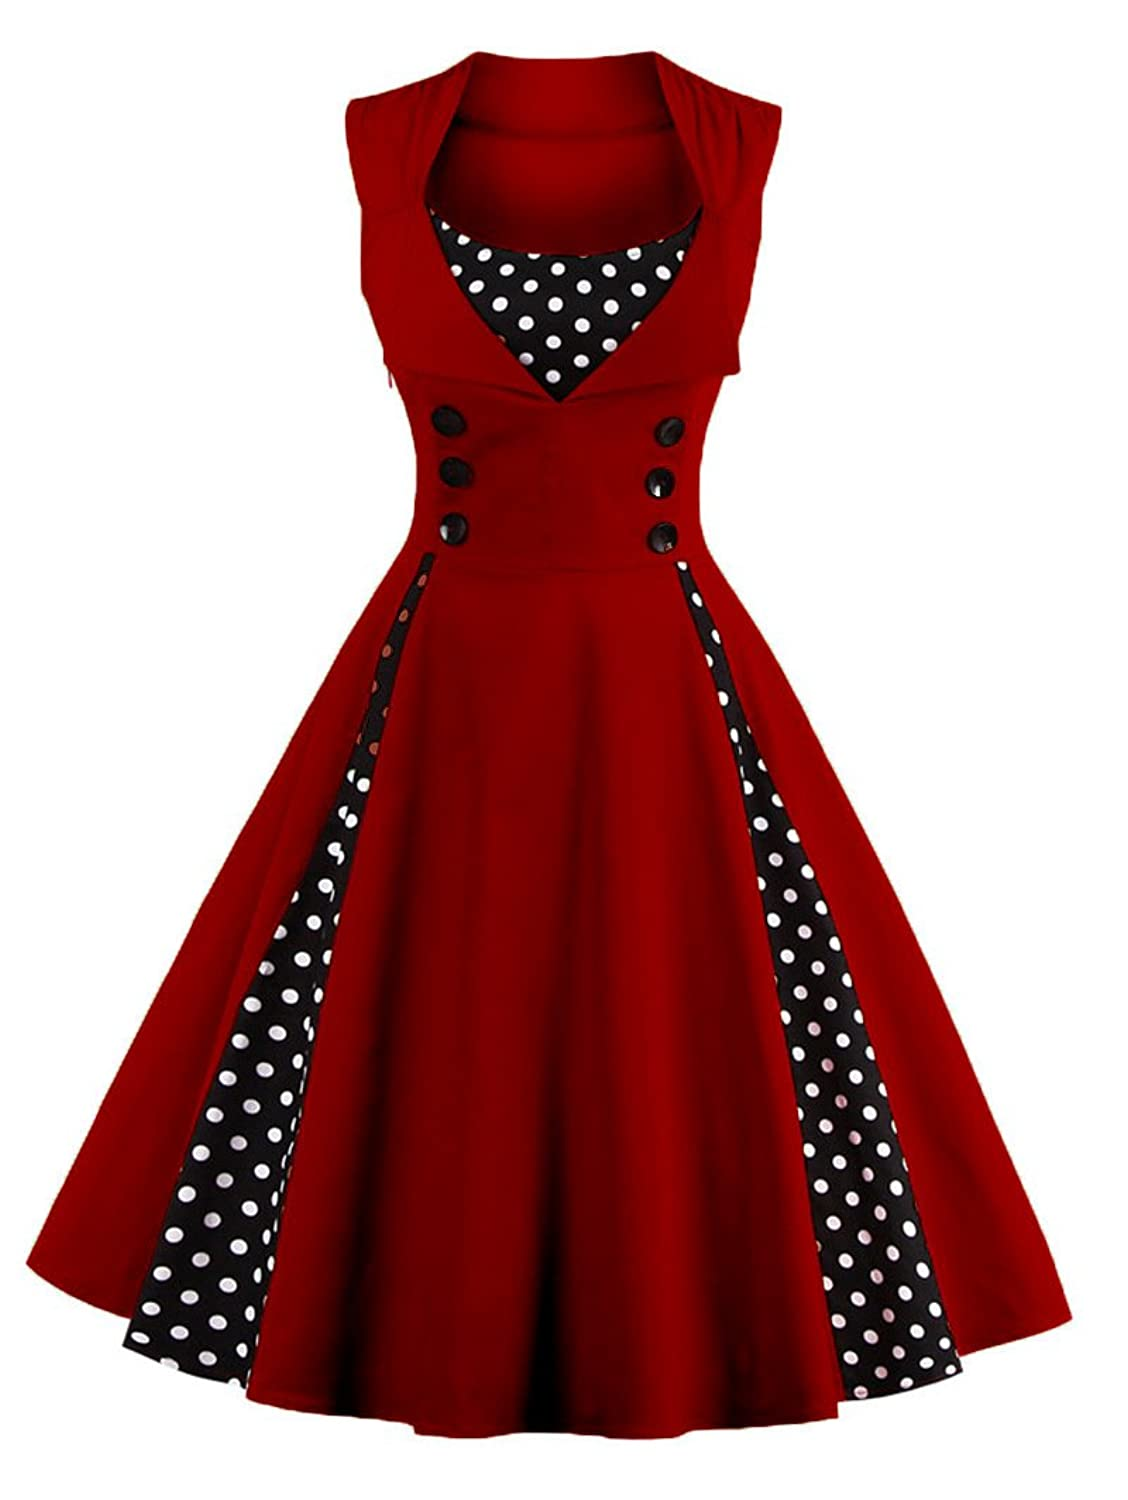 Vintage Inspired Clothing Stores LUNAJANY Womens Rockabilly Vintage Polka Dot Pin up Swing Cocktail Party Dress $24.59 AT vintagedancer.com